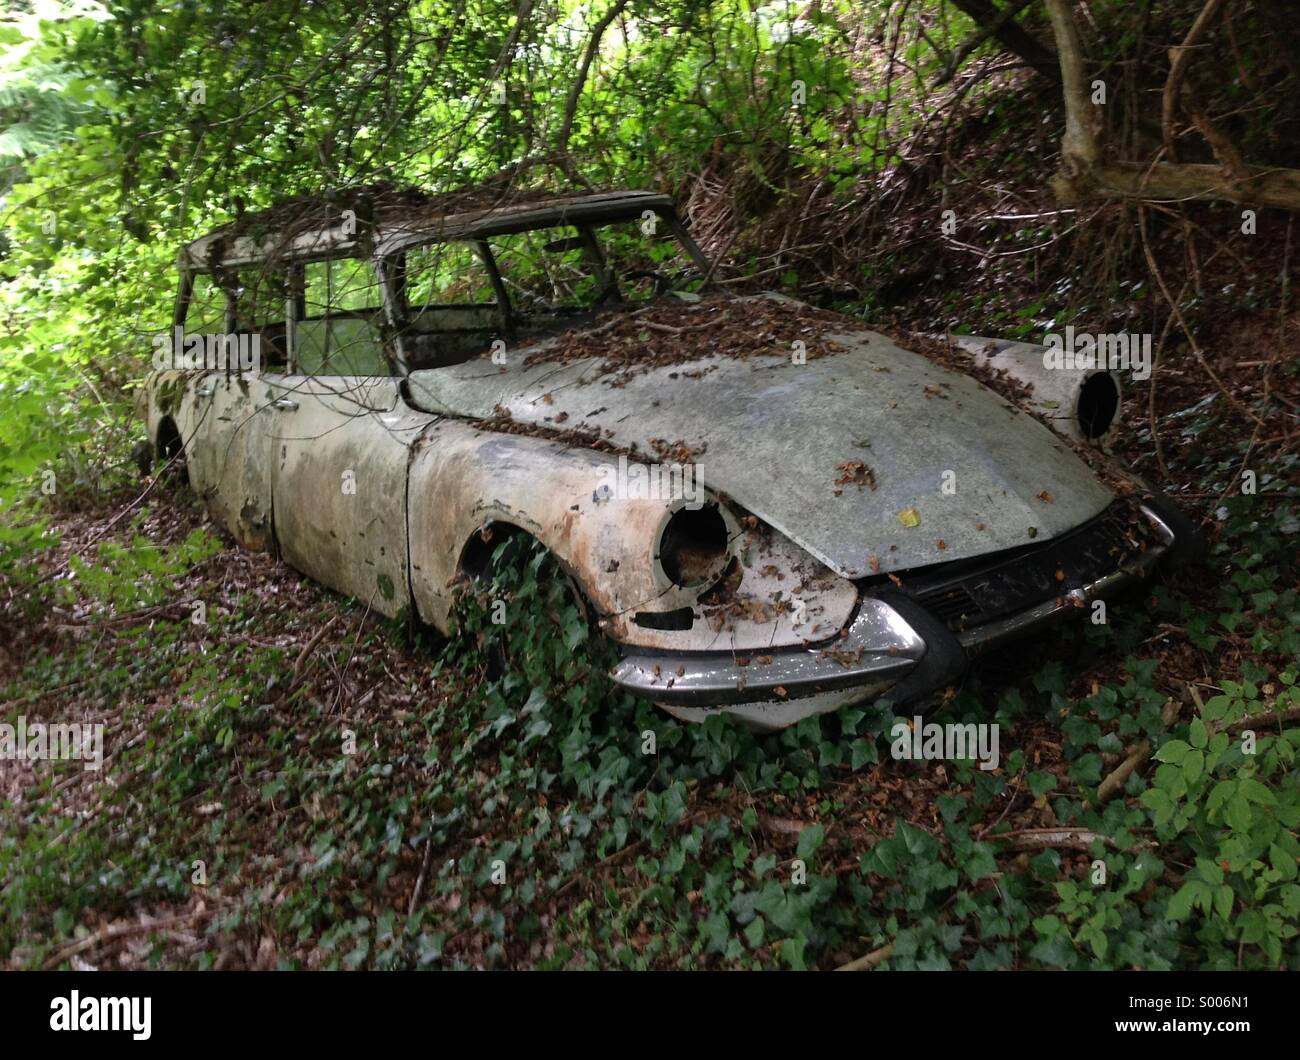 Delighted Who Discovered The Car Gallery - Classic Cars Ideas - boiq ...